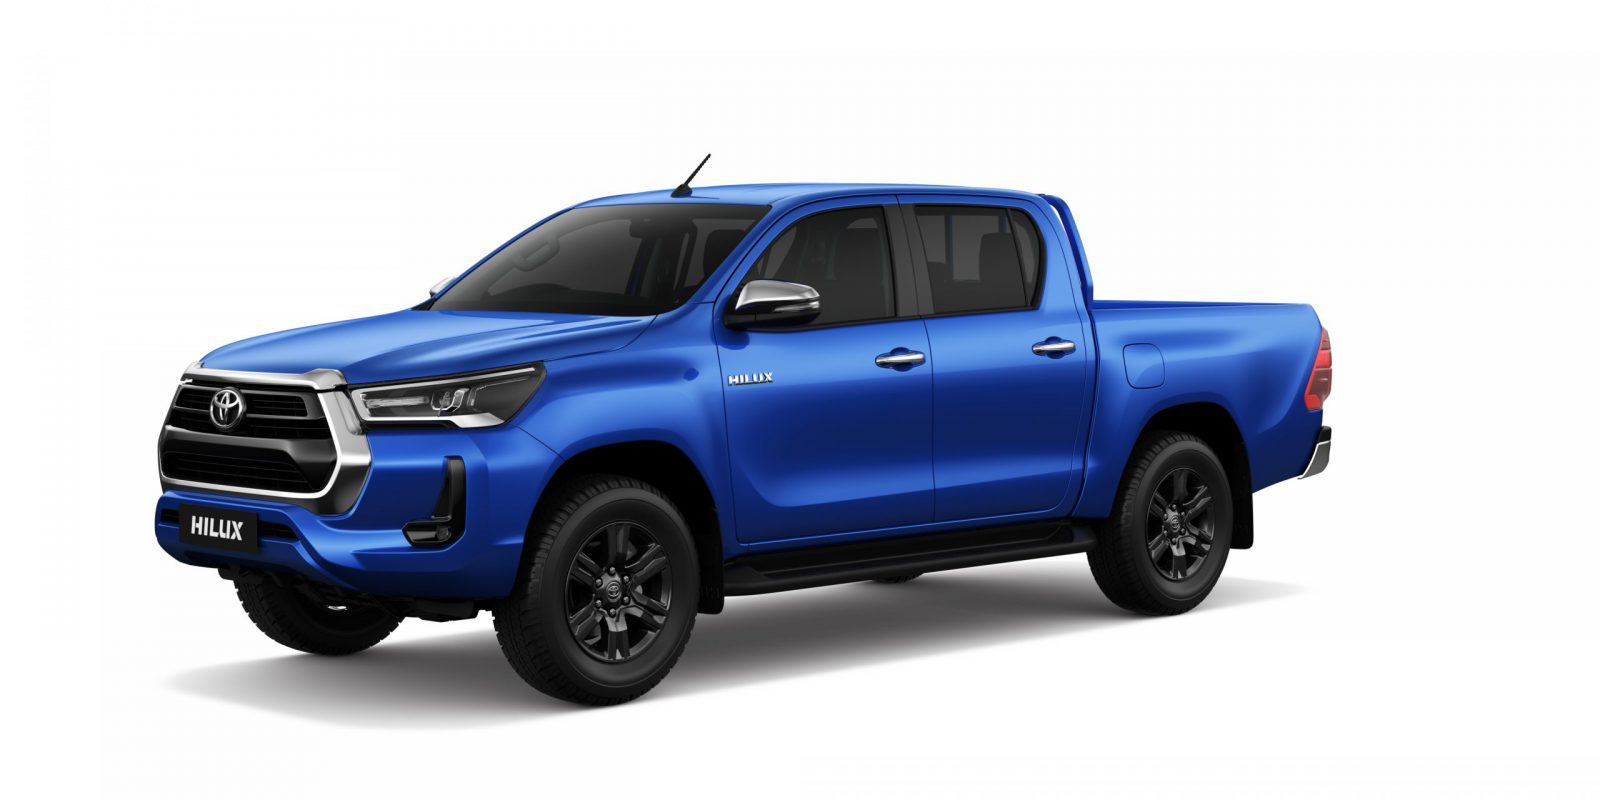 Toyota releases details on 2021 Hilux with updated turbo diesel engine